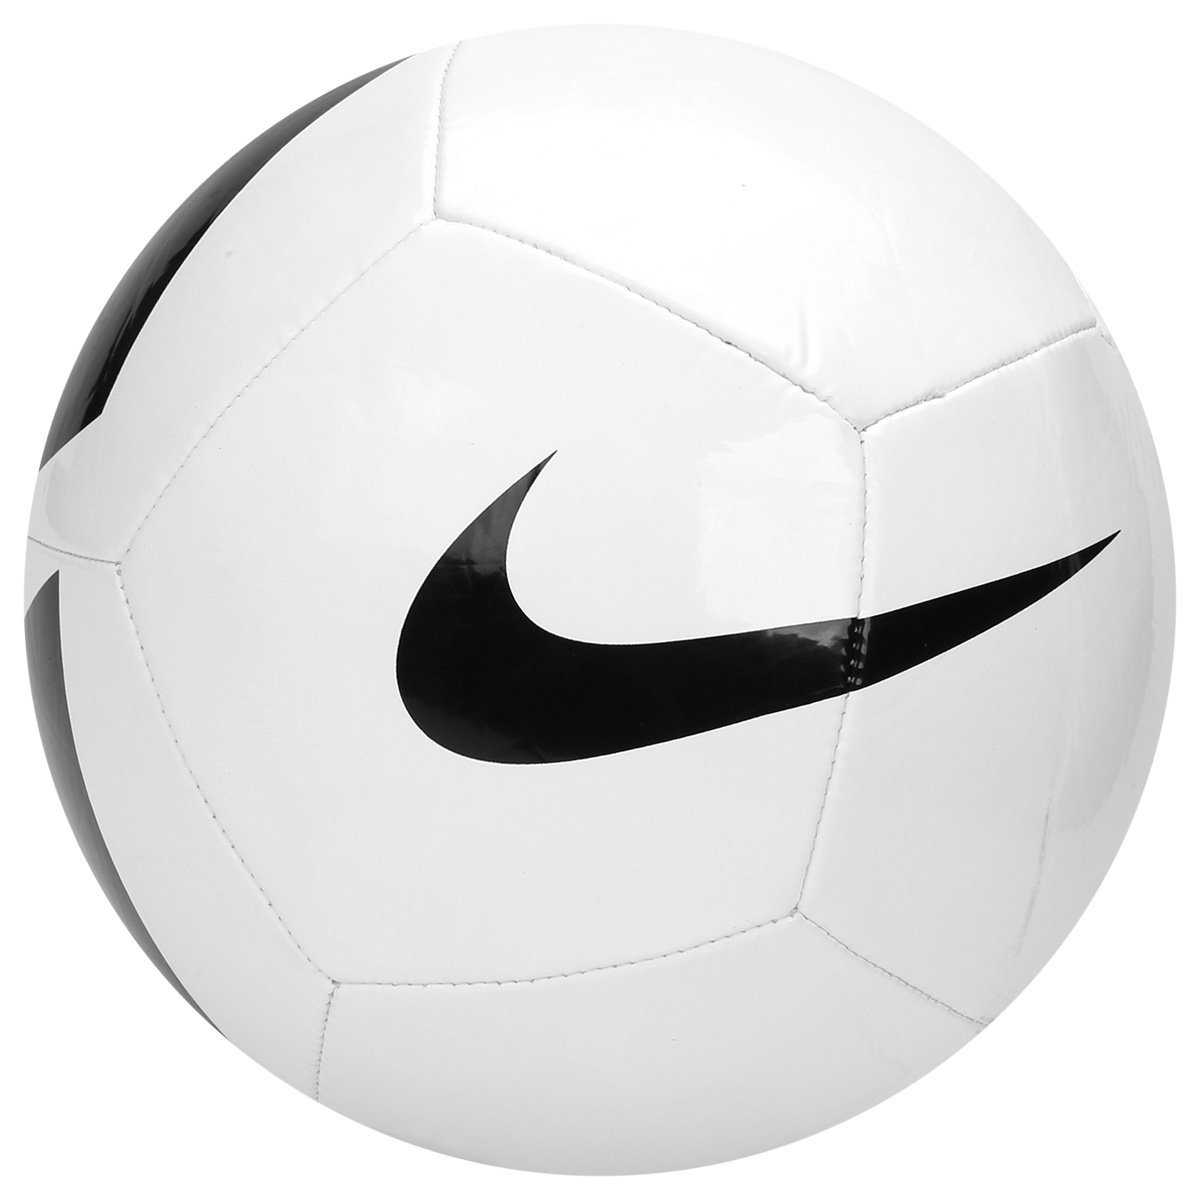 18ff071c39 Bola Campo Nike Pitch Team SC3166-100 Branco Preto